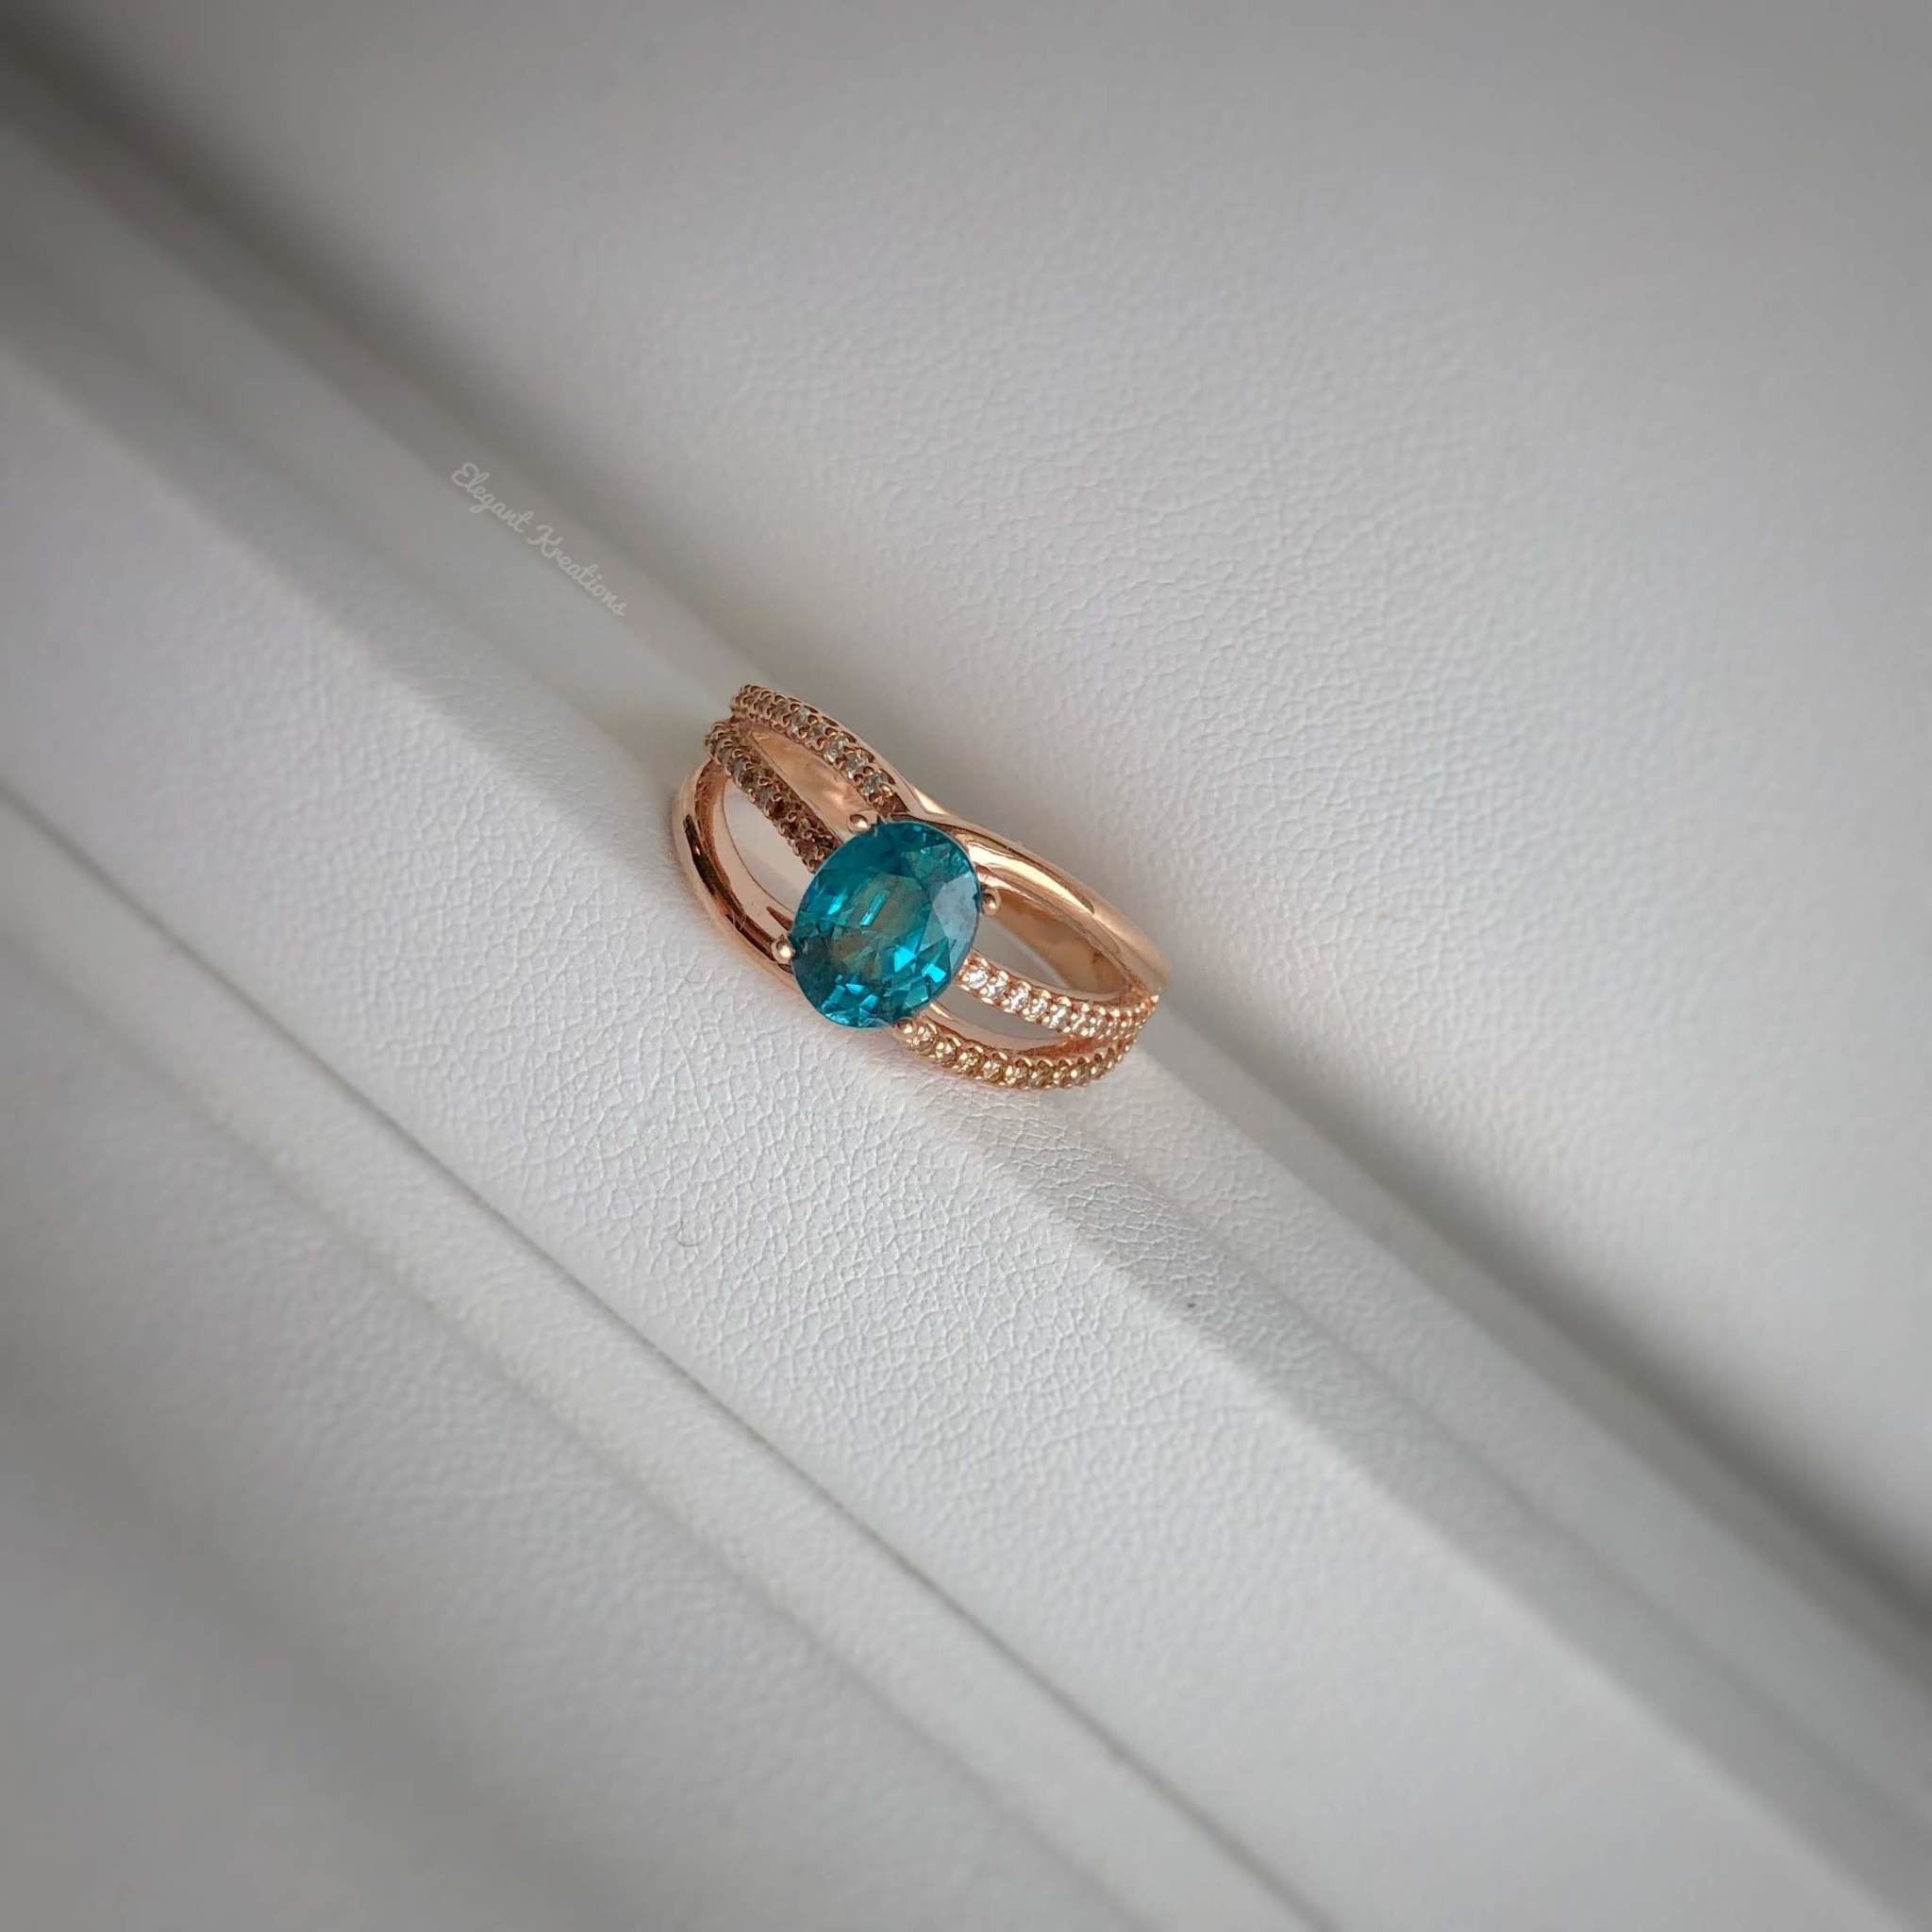 Blue Zircon Rose Gold Ring with Chocolate and White Diamonds